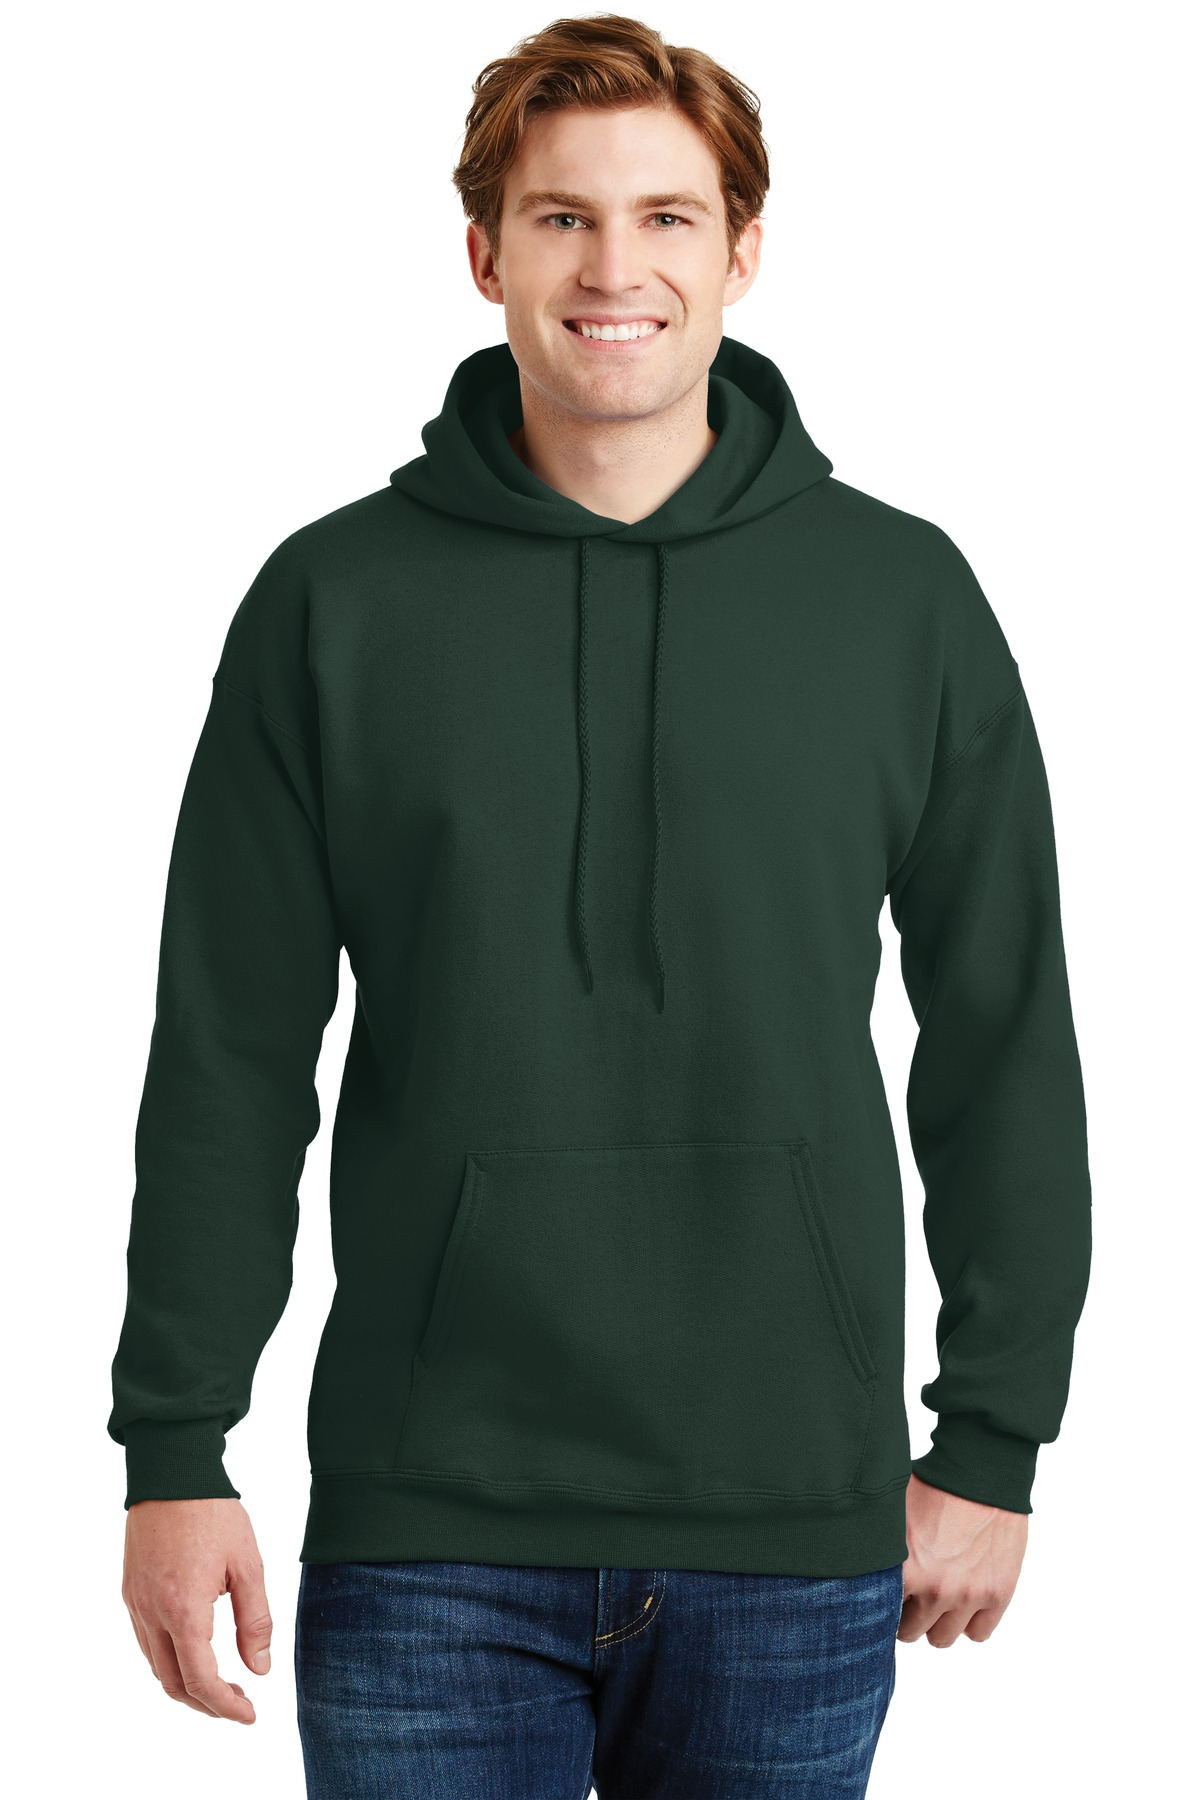 Hanes ®  Ultimate Cotton ®  - Pullover Hooded Sweatshirt.  F170 - Deep Forest